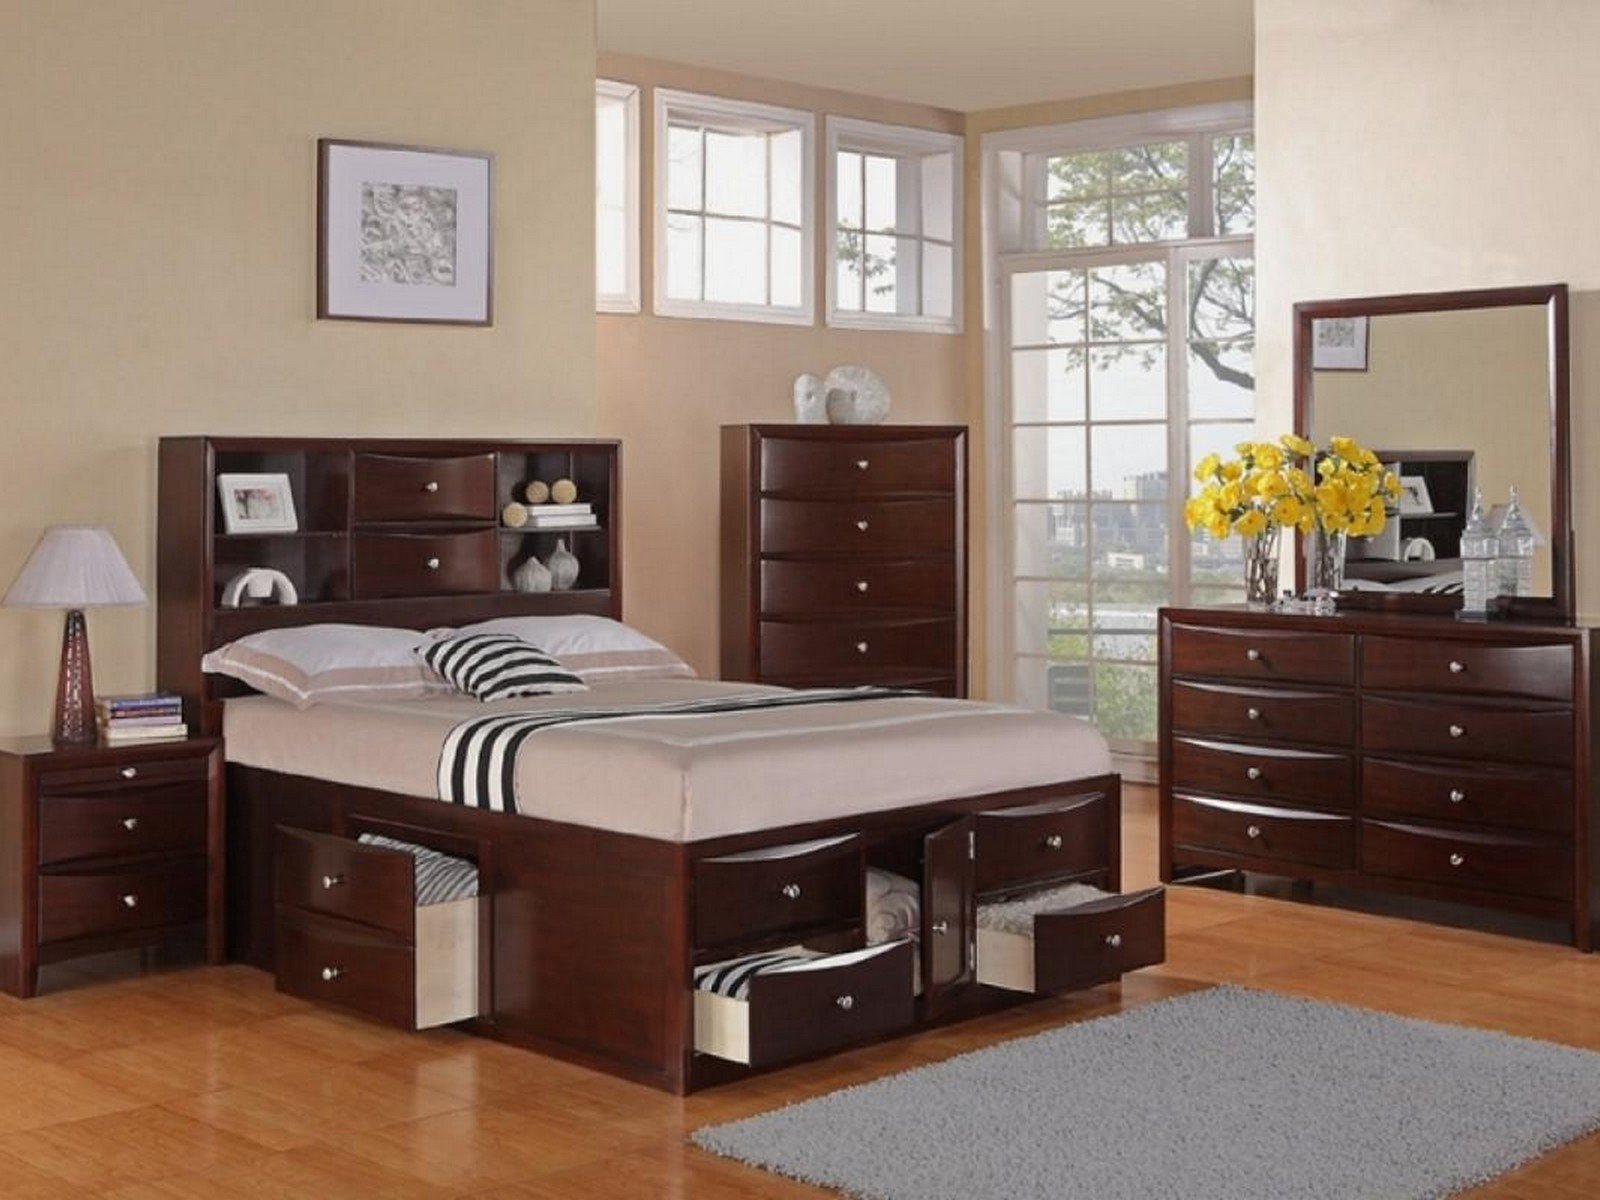 Best ideas about Full Size Bedroom Set . Save or Pin Full Size Girl Bedroom Sets Ideas Now.